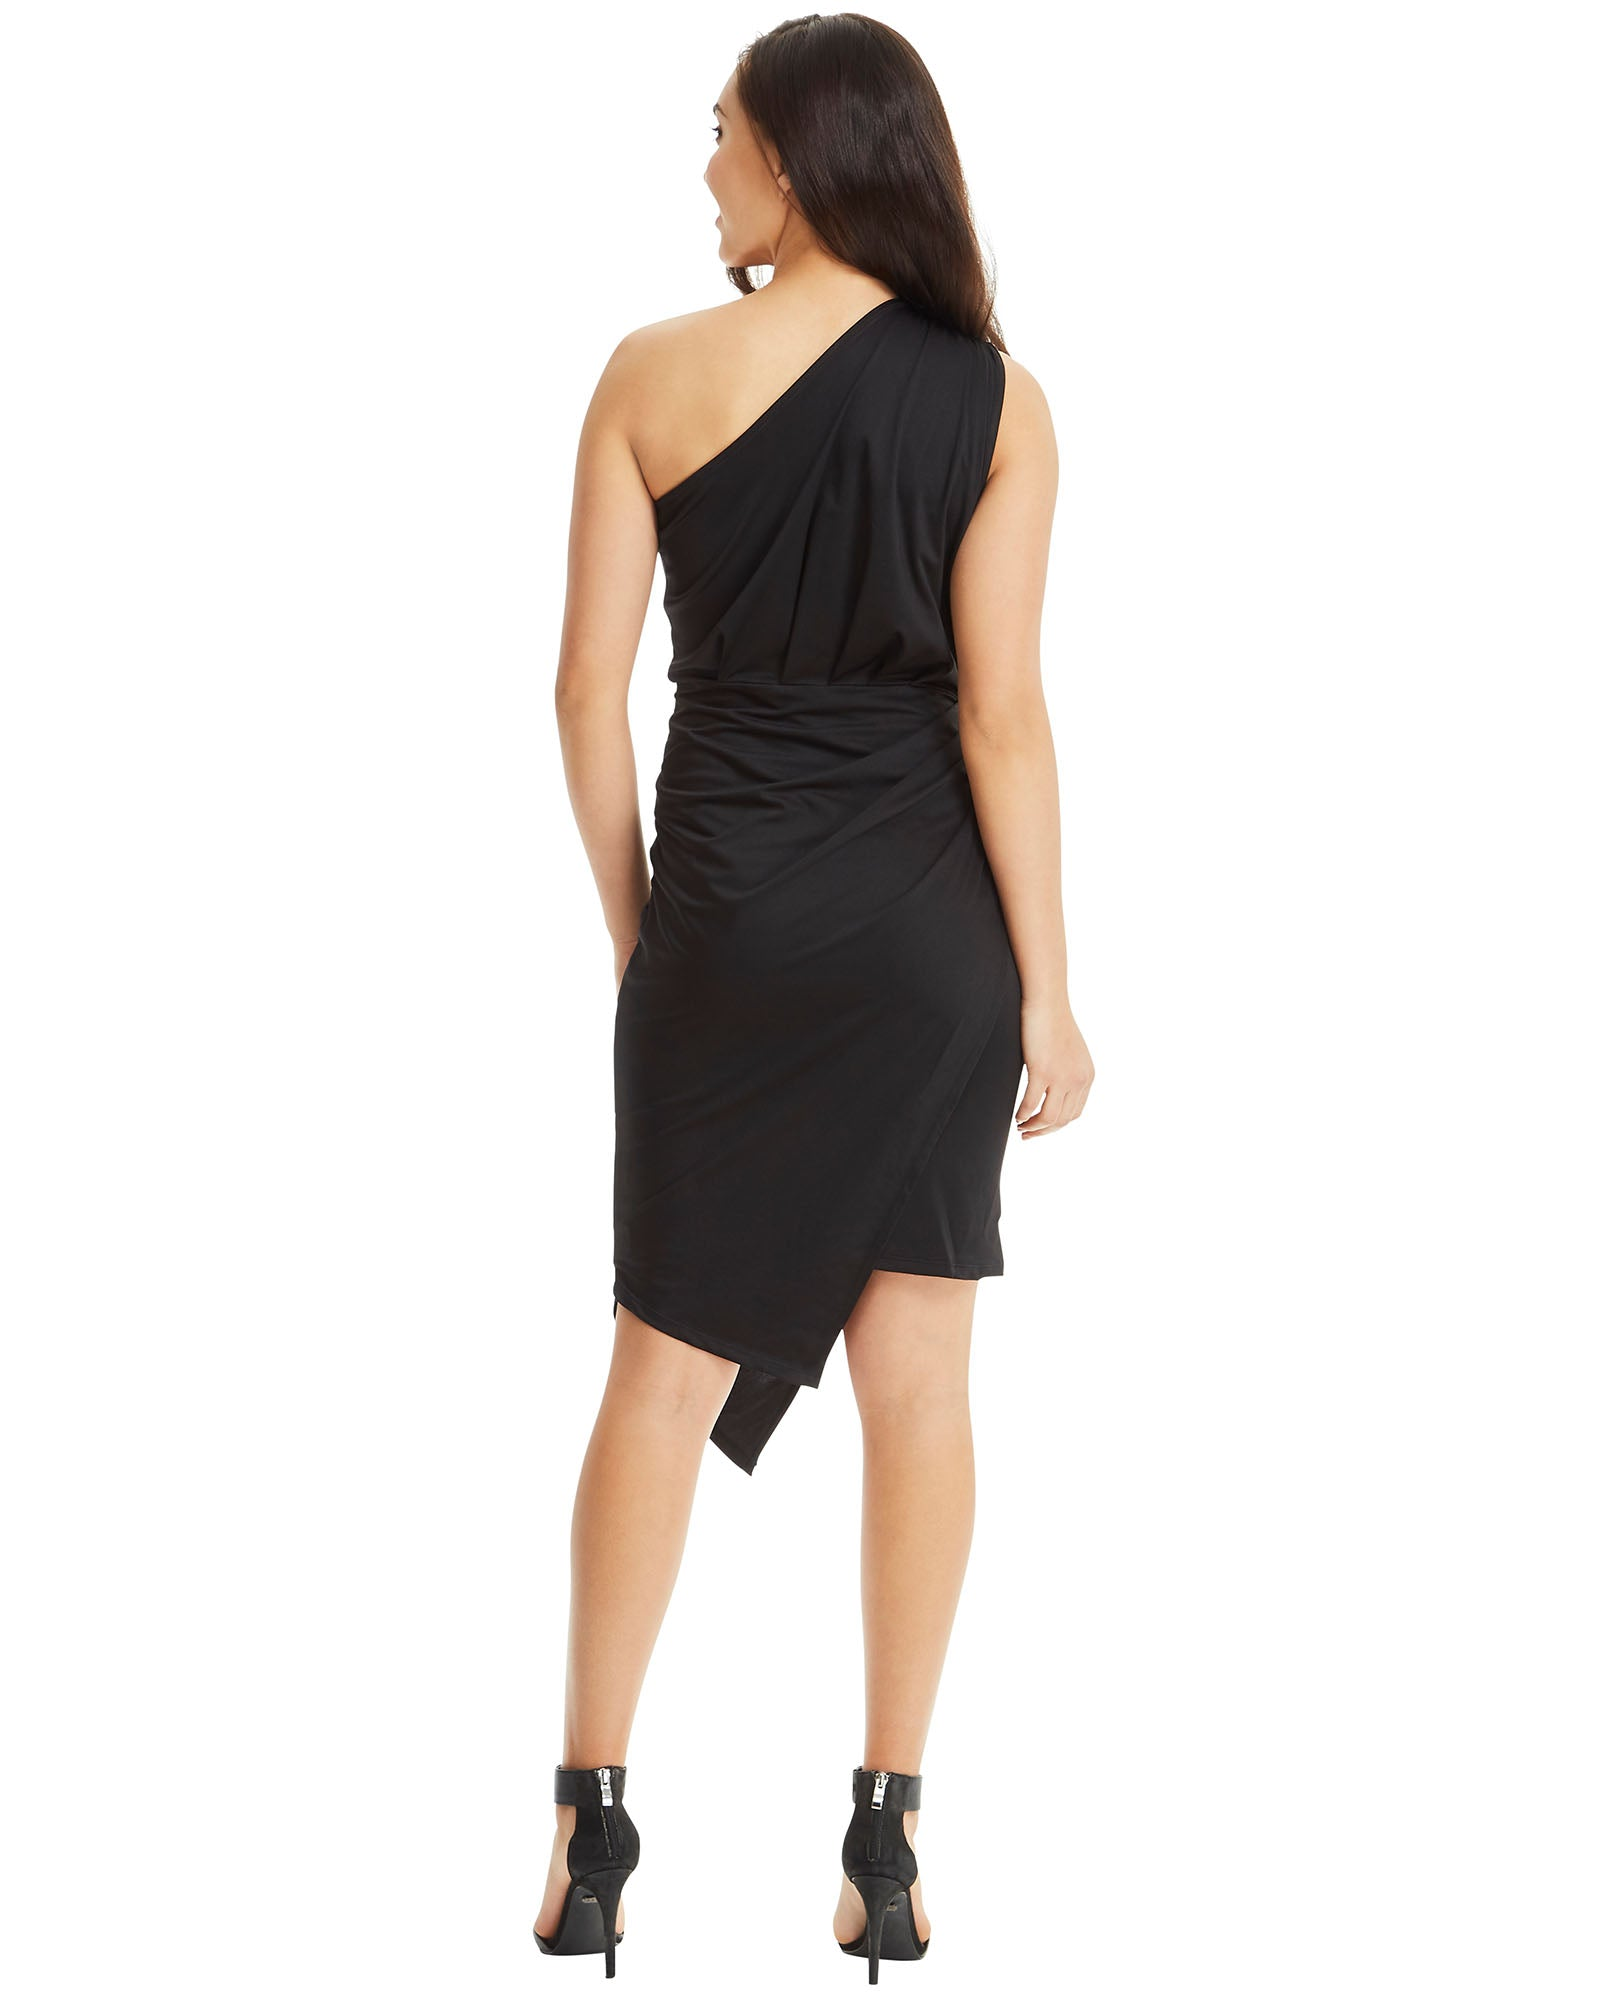 SKIVA one shoulder dress asymmetrical black stretch fabric slip on pull on knee length midi work party cocktail